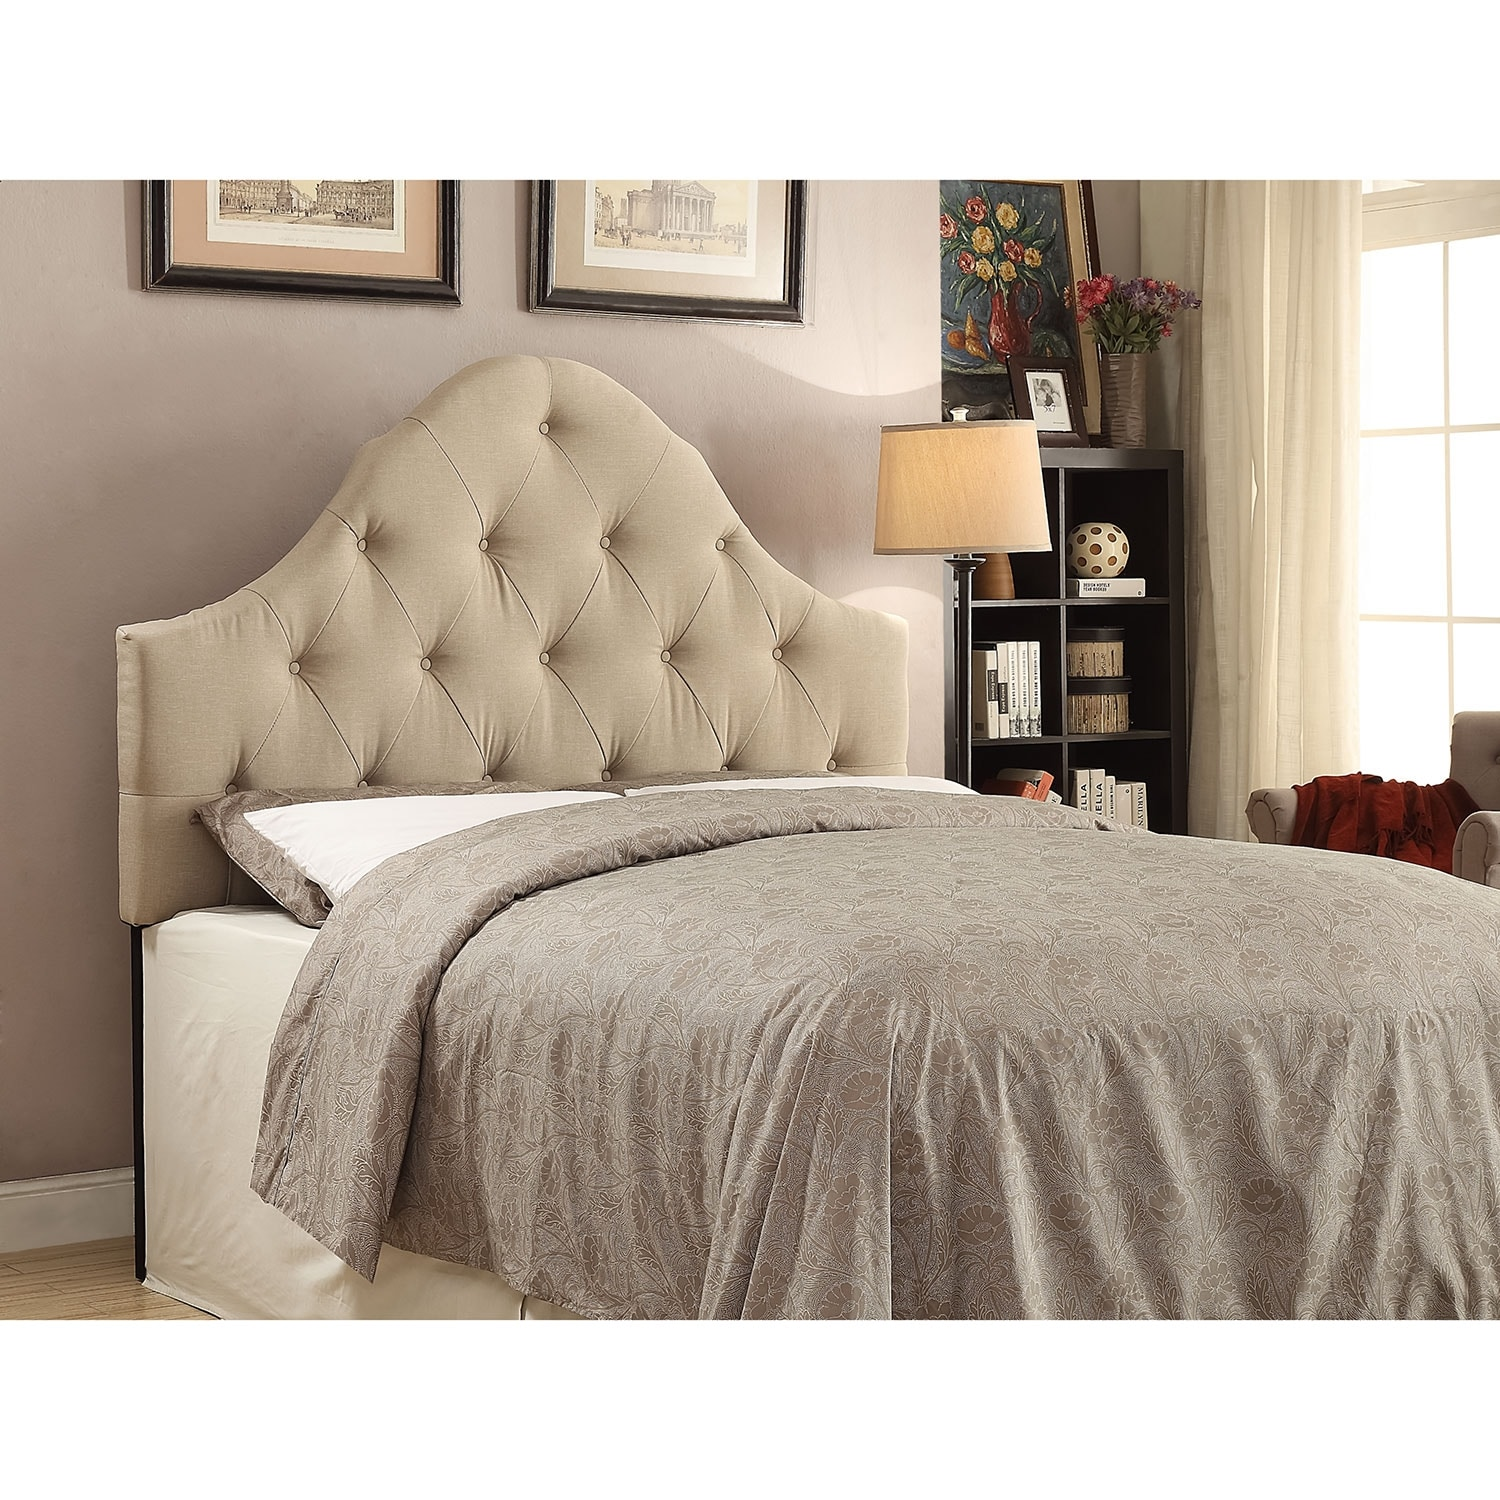 Brittany Full/Queen Headboard - Beige